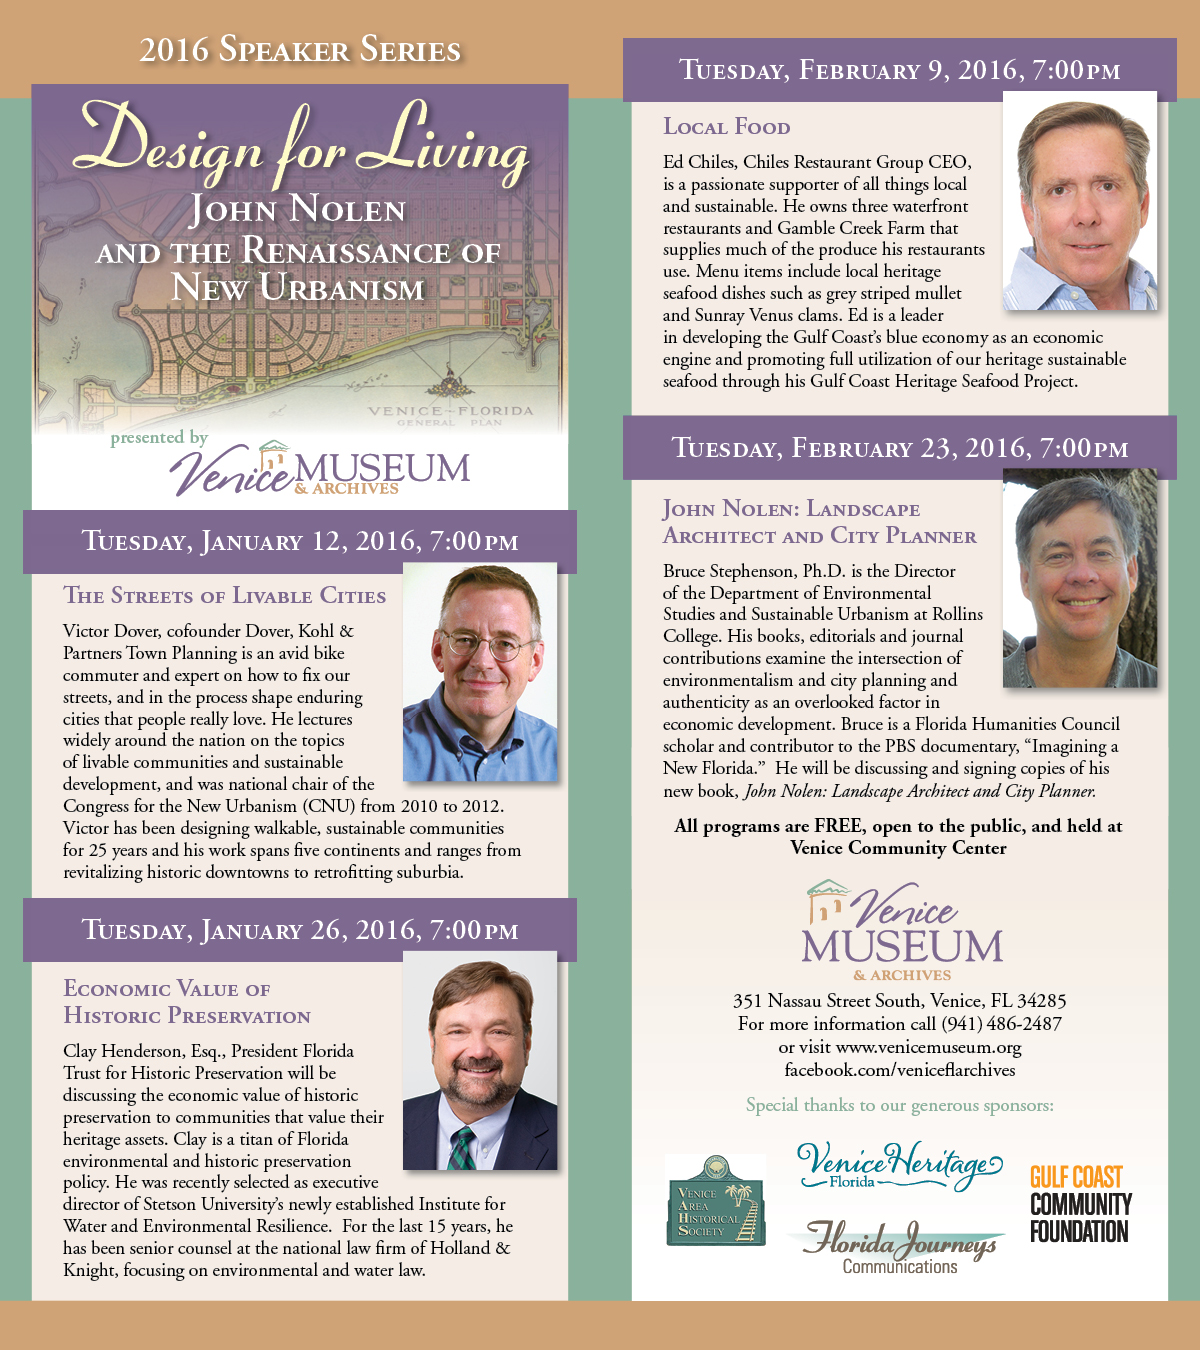 informational flyer about the Design for Living speaker series